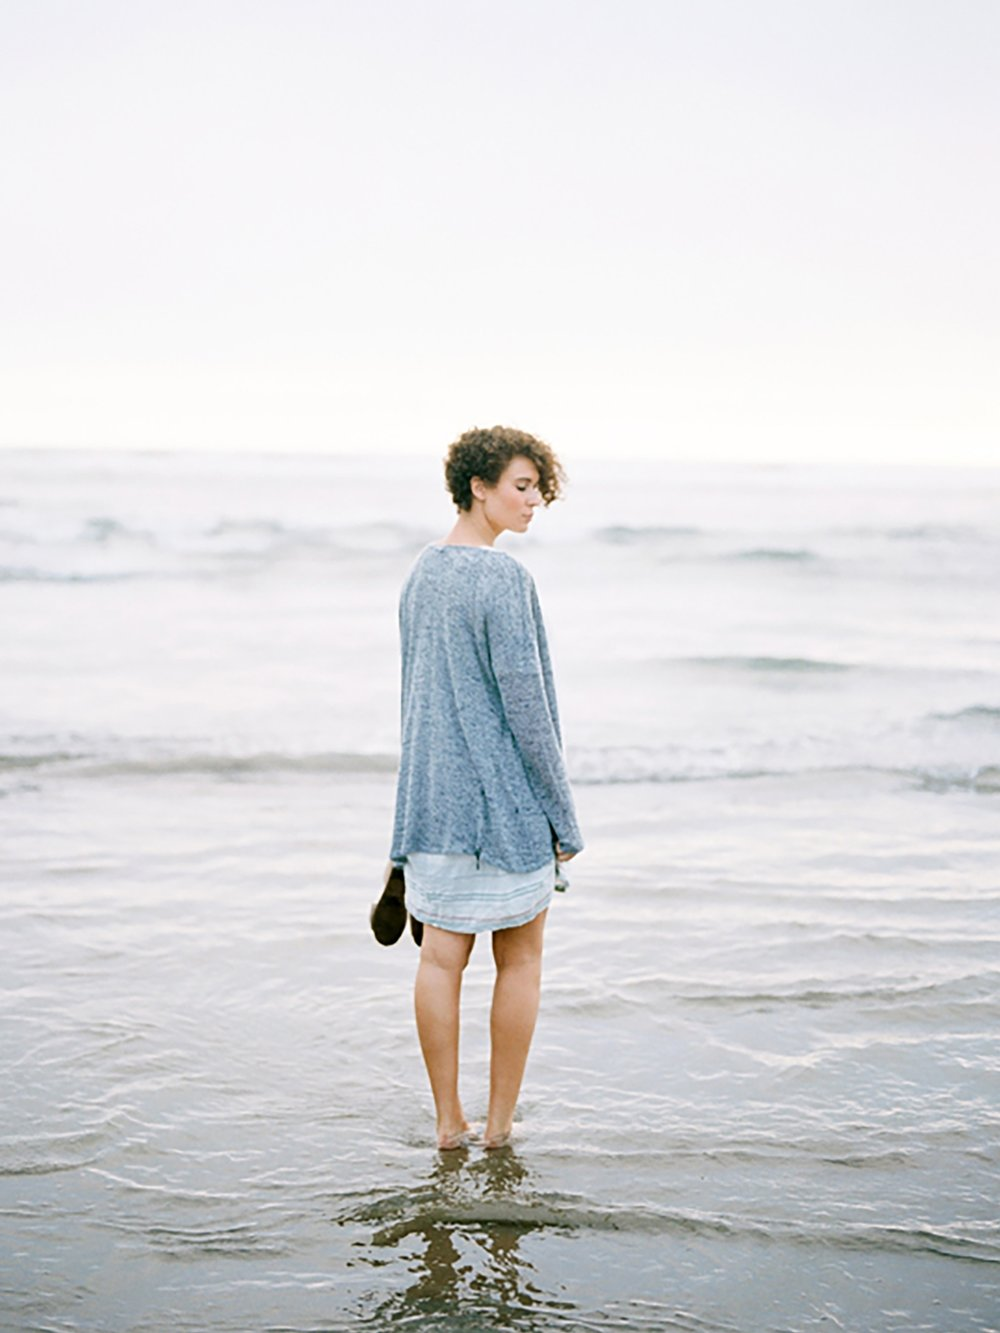 Jenni_Kupelian_Senior_Portraits_Oregon_Coast.jpg